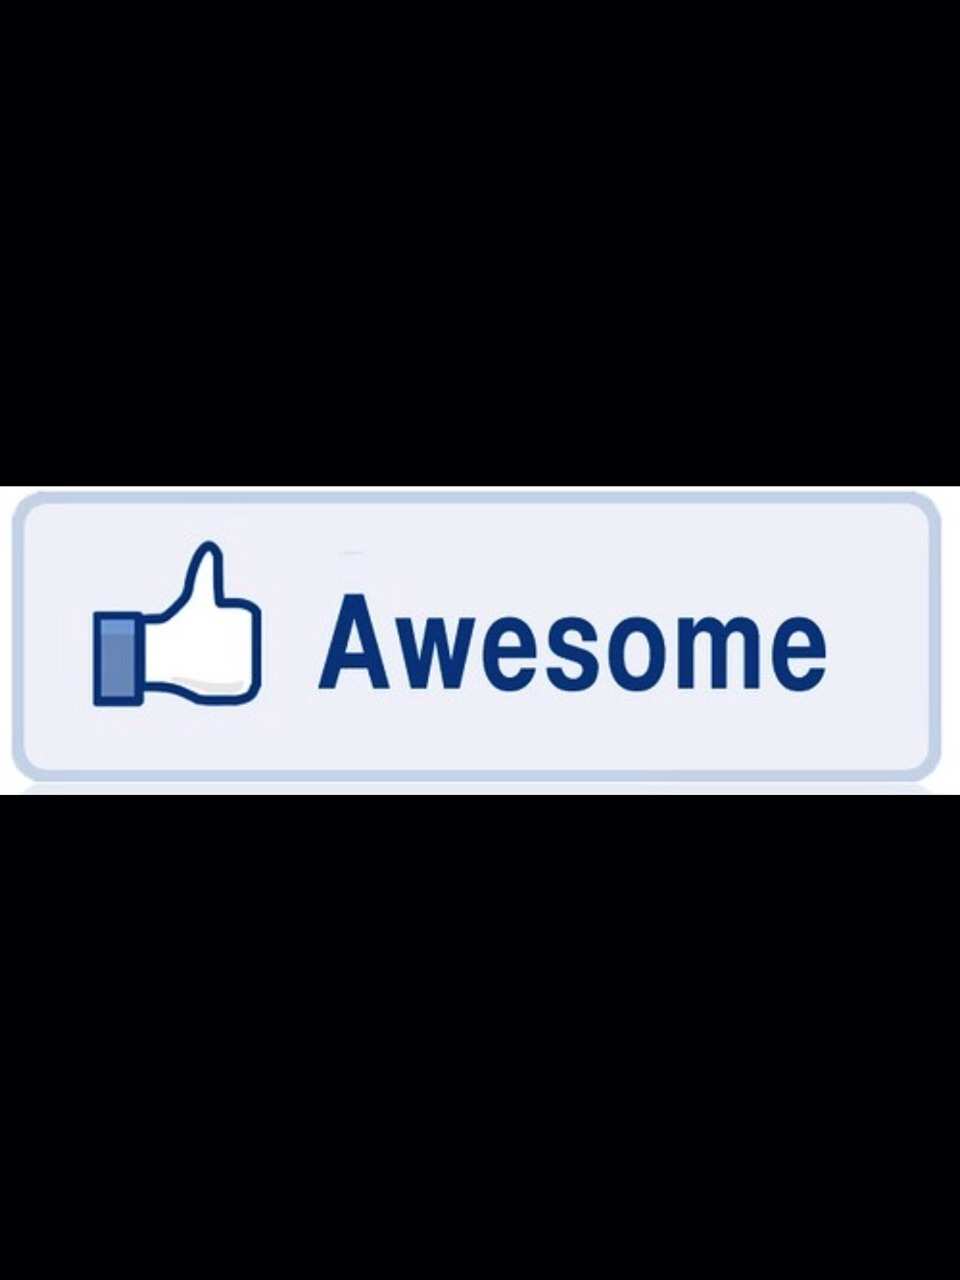 👍 Don't forget to like... 👍